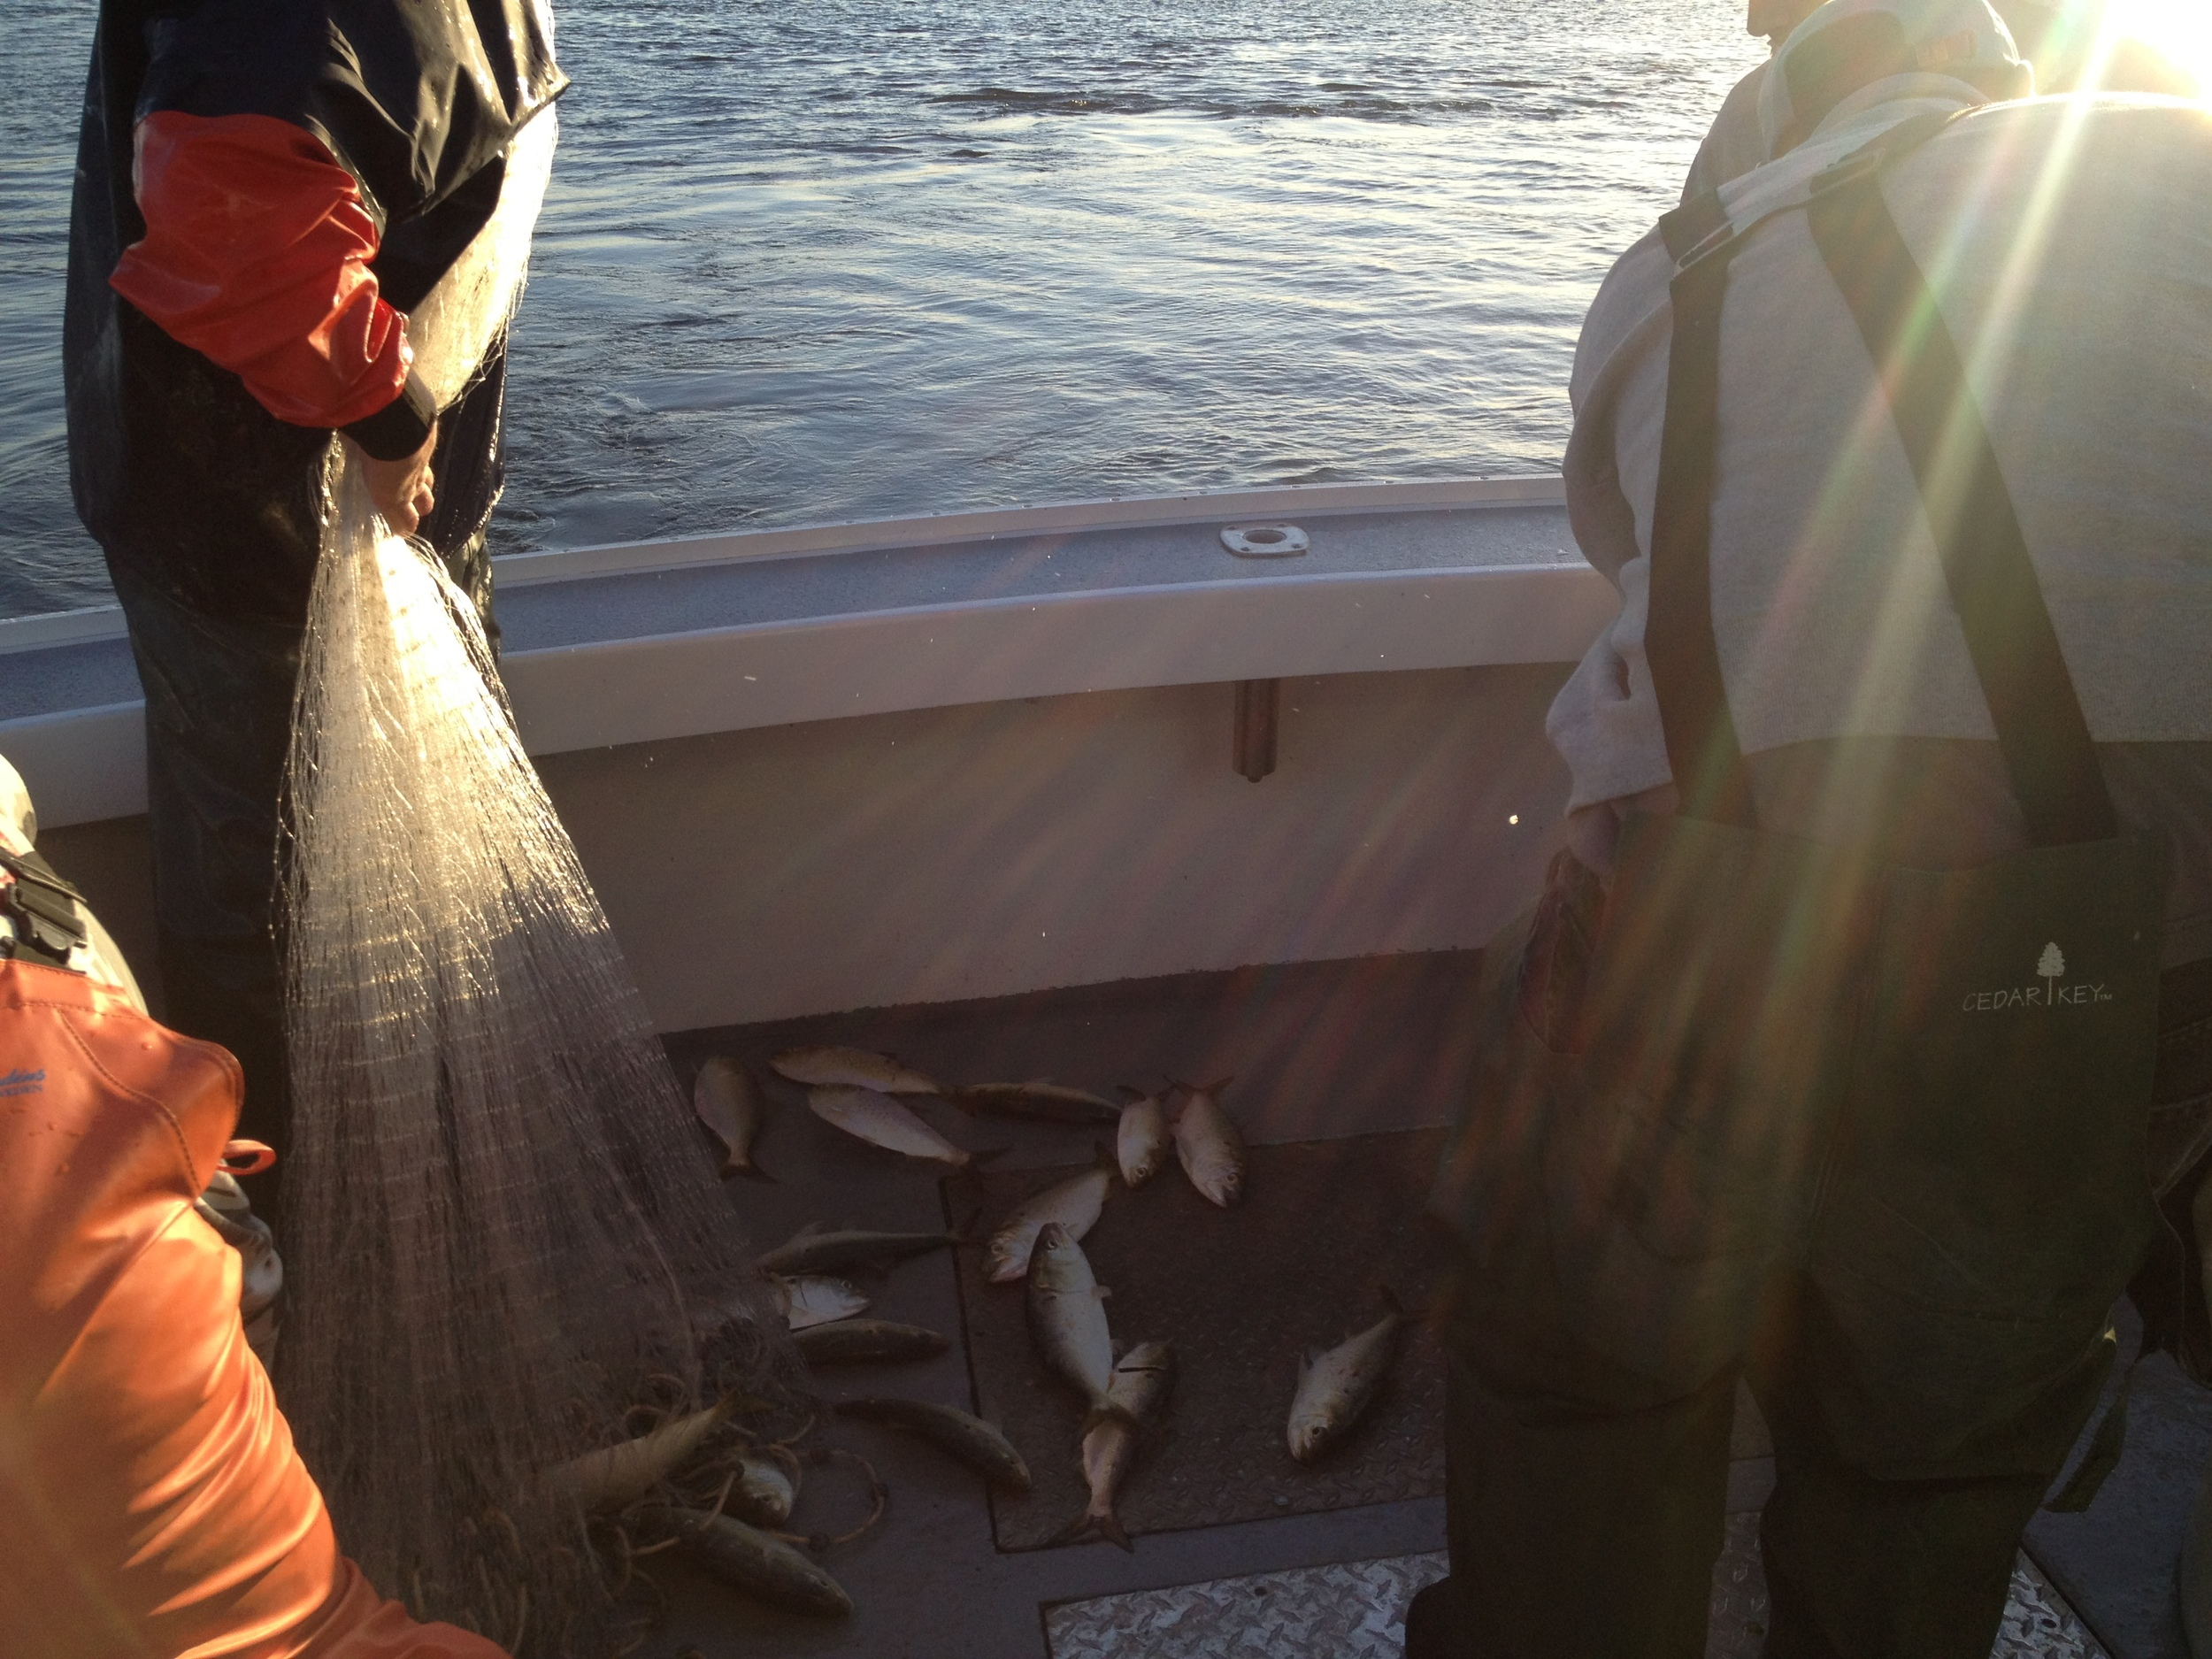 Bringing in the bait - menhaden to ecologists, bunker to fishermen.